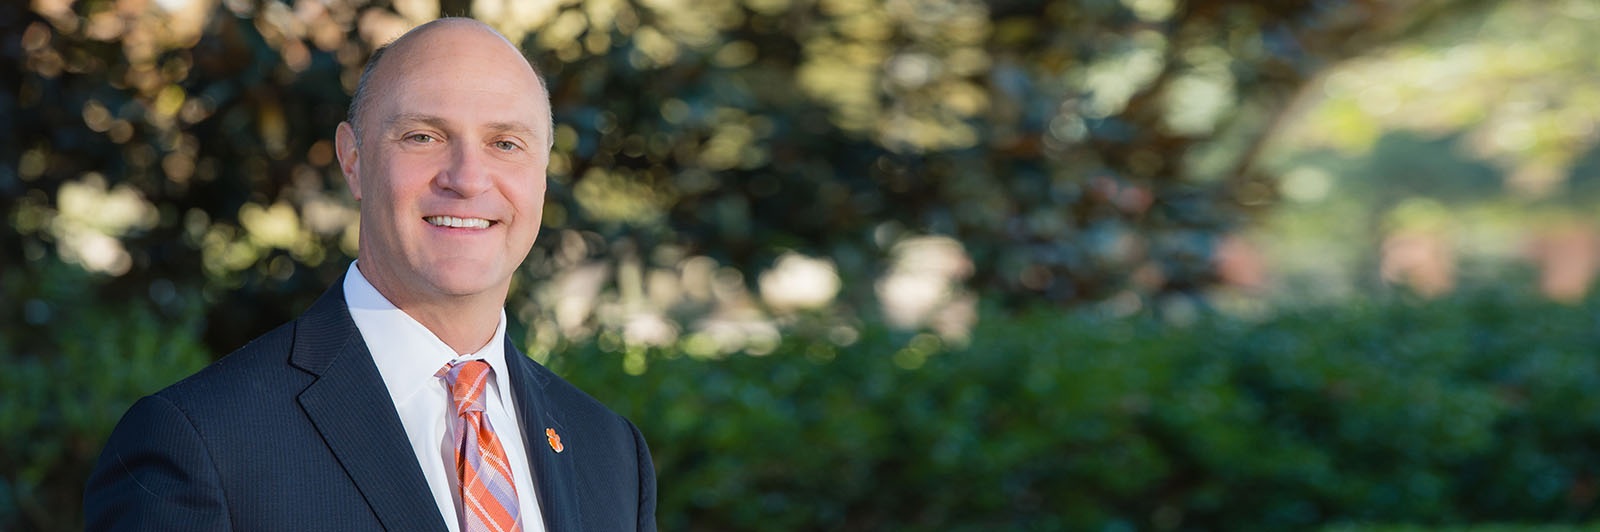 President Clements at Clemson University, South Carolina